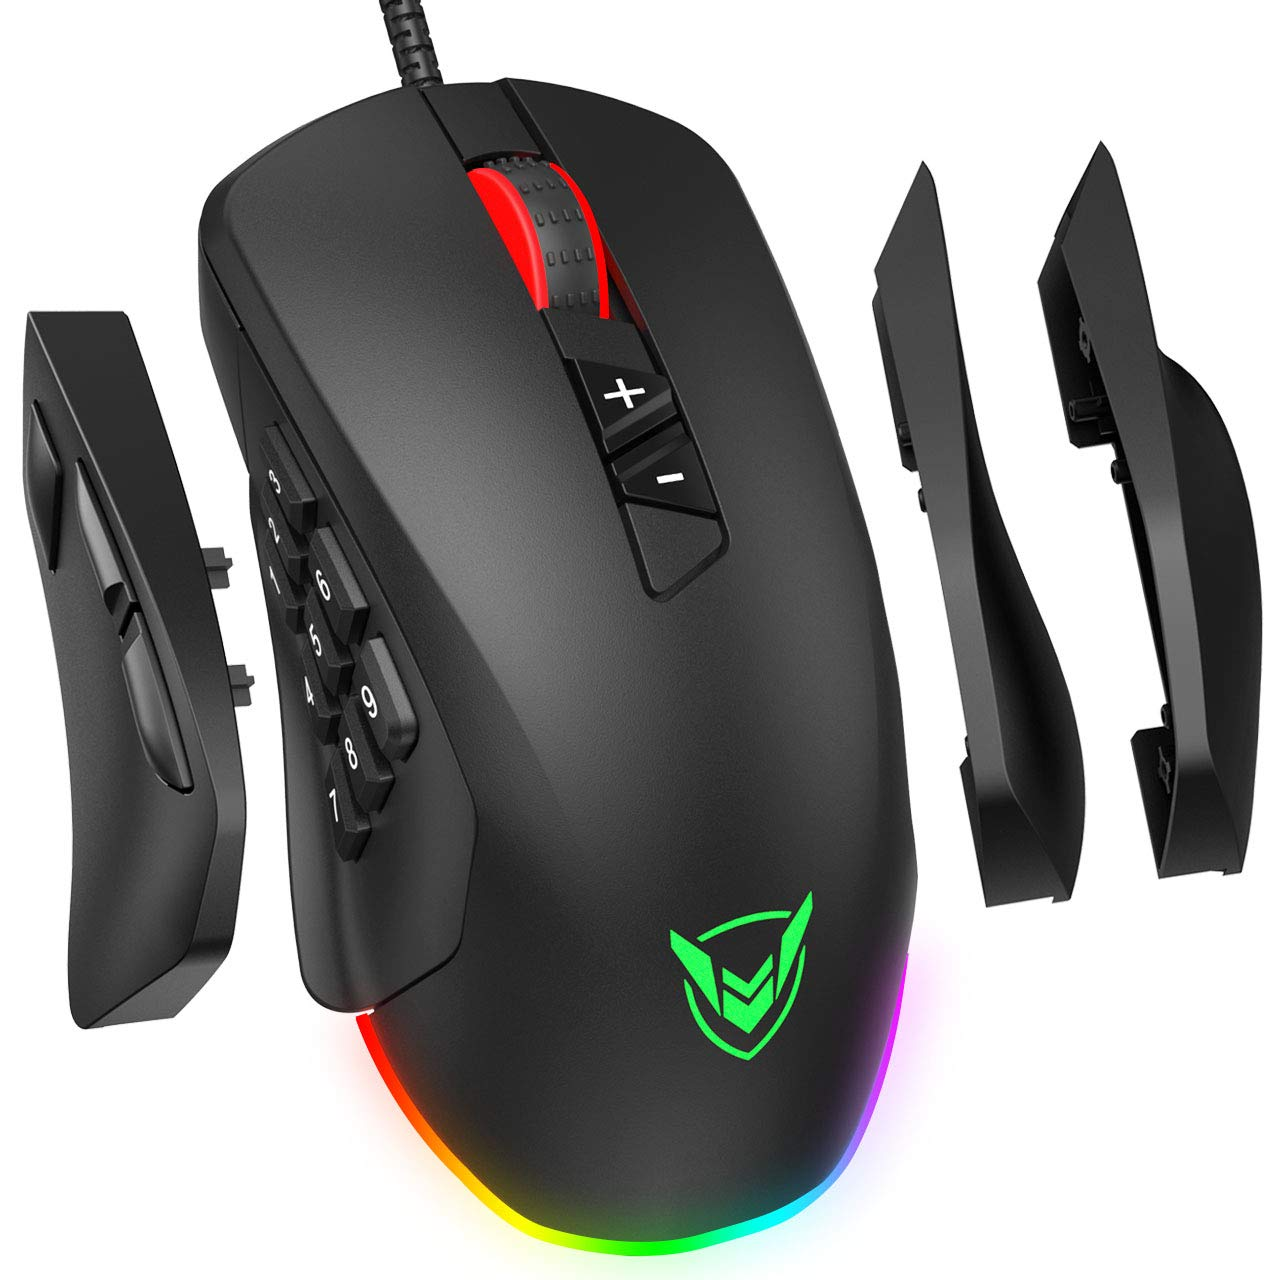 PICTEK Gaming Mouse Wired, 24,000 DPI Optical Sensor-Chroma RGB Lighting, MMO Gaming Mice with 17 Programmable Buttons, 4 Interchangeable Side Plate 3 9 Buttons, Palm Claw Grip Ergonomic for PC Gamer